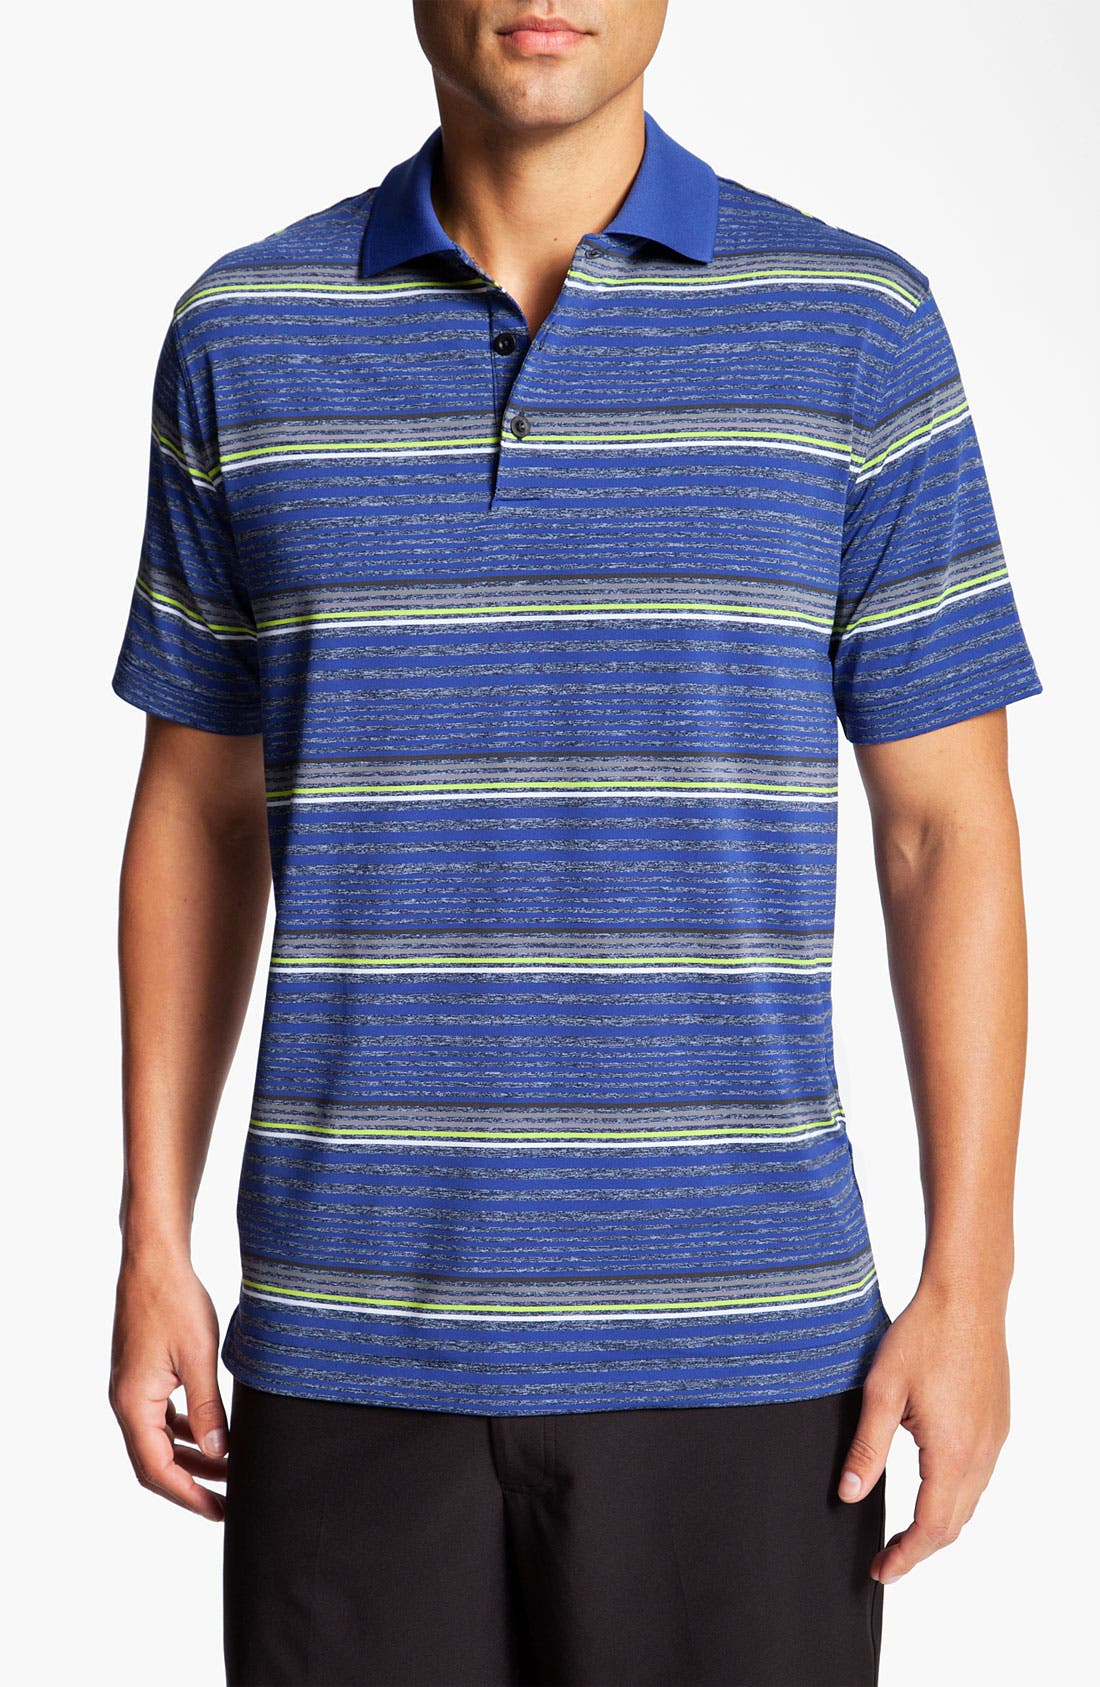 Main Image - Nike Golf 'Fashion Stripe' Dri-FIT Polo